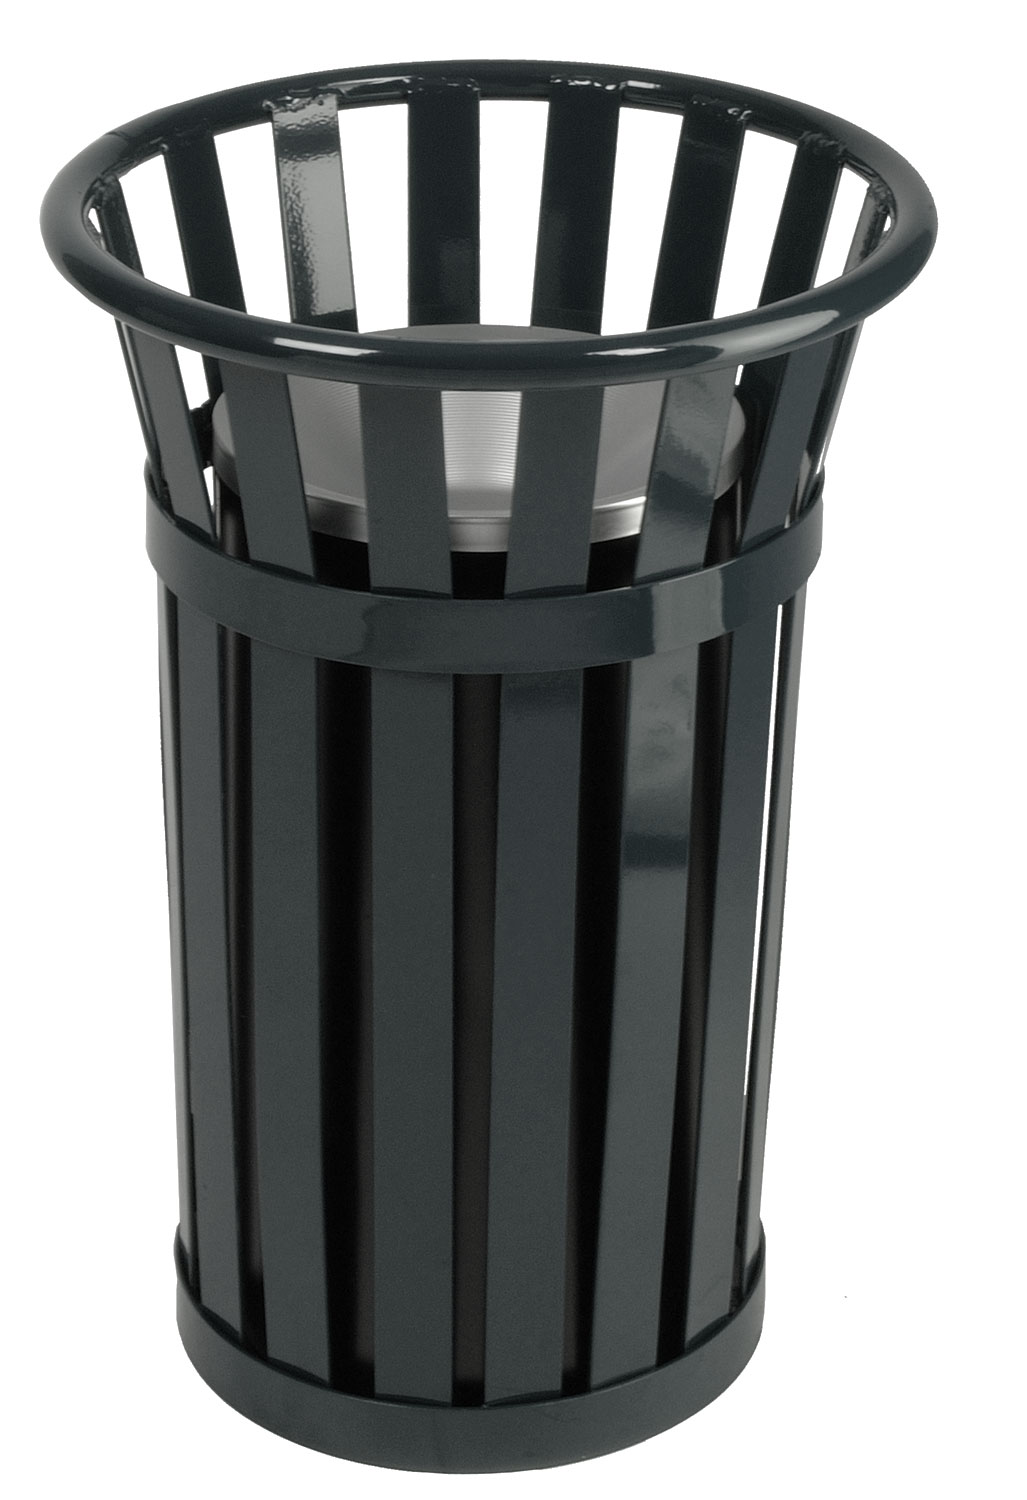 Oakley Collection Waste Receptacles